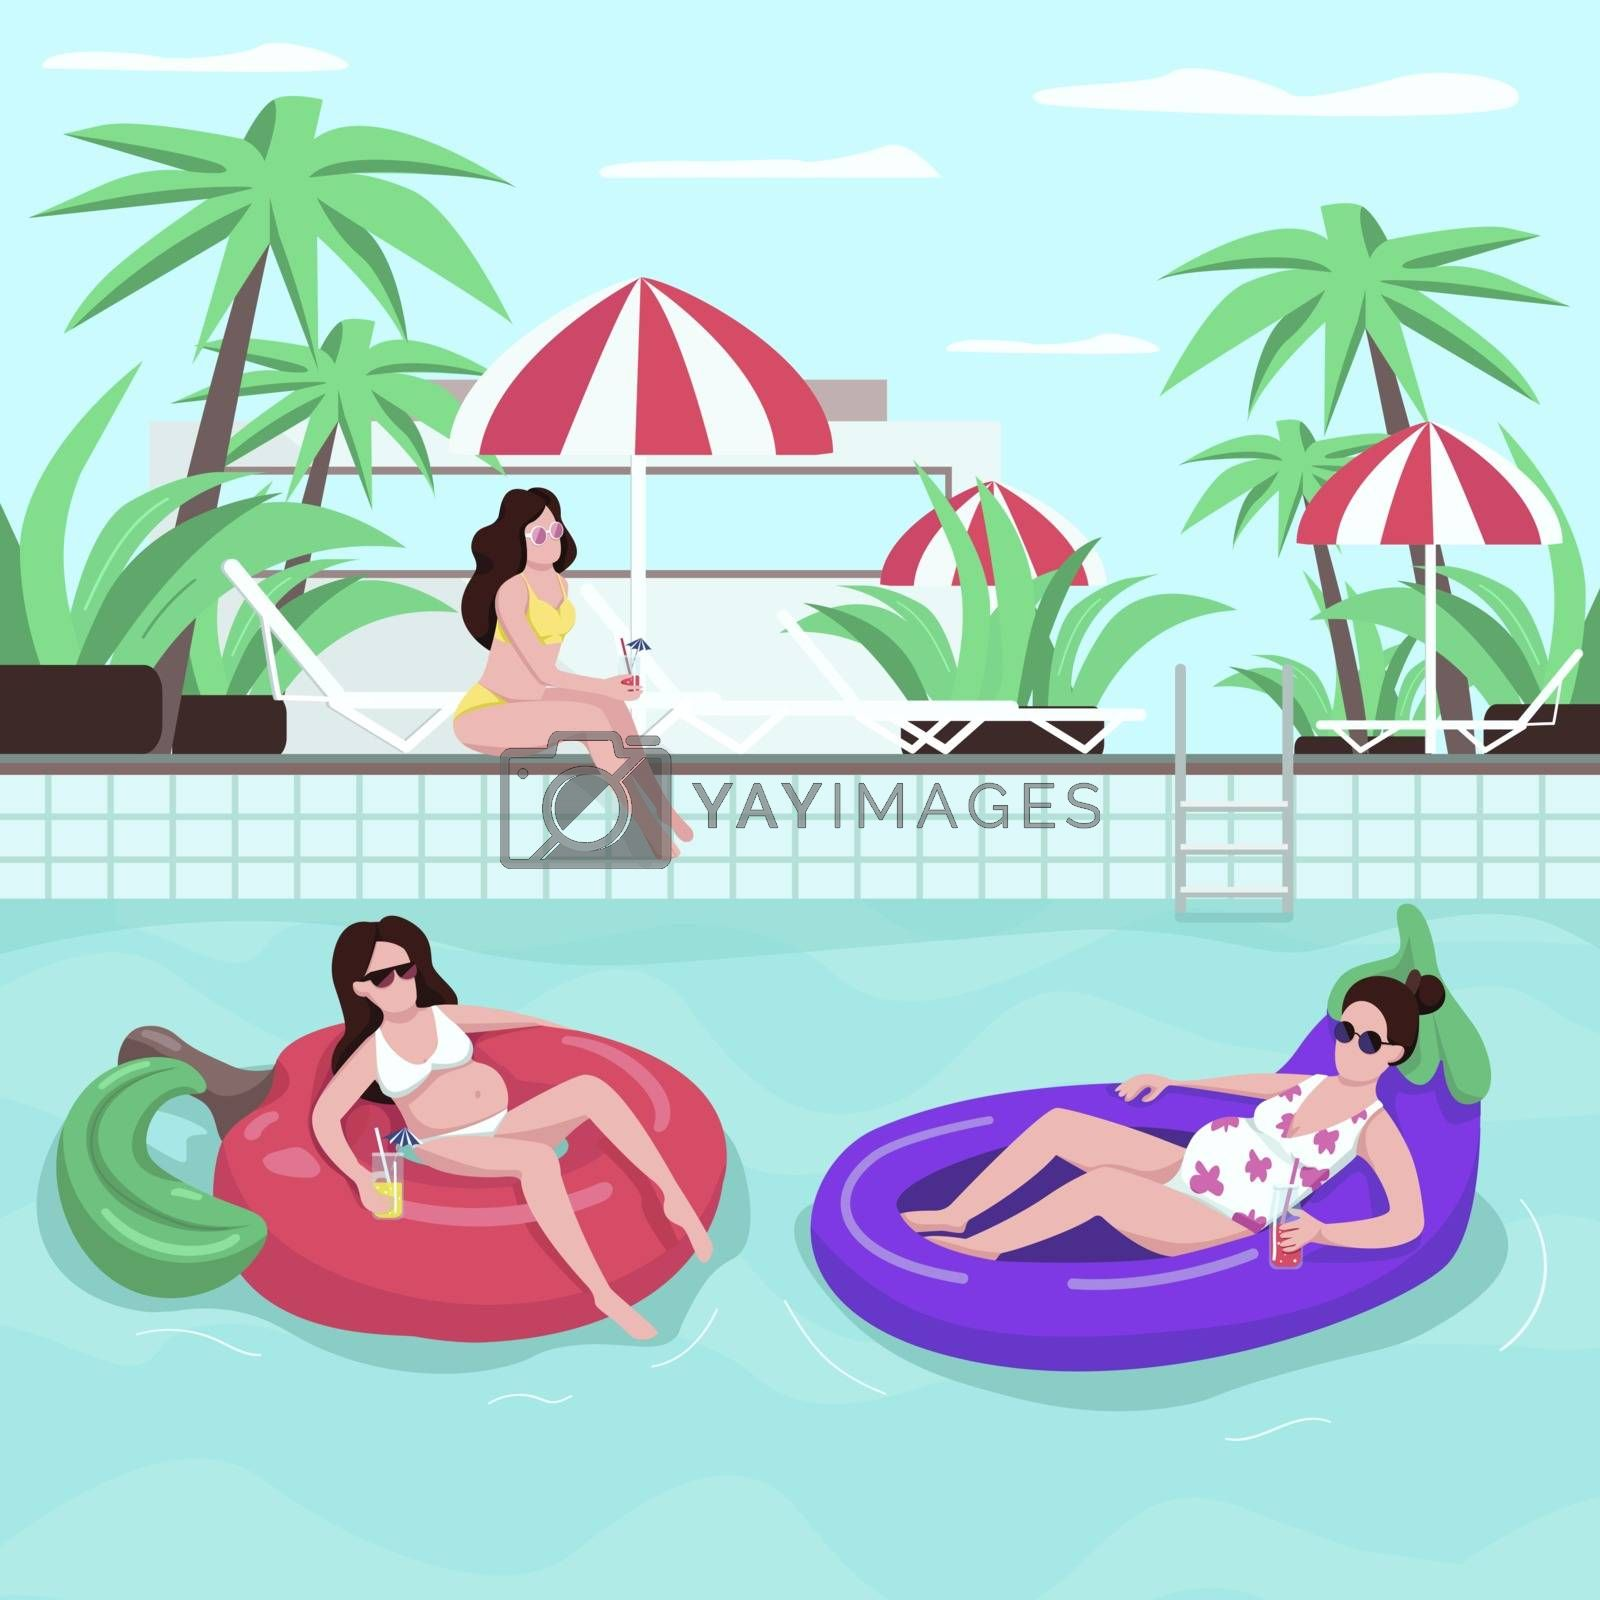 Family summer tour flat color vector illustration. Girl in sunglasses. Female with drink. People on inflatable water rings. Pregnant woman 2D cartoon characters with loungers on background. ZIP file contains: EPS, JPG. If you are interested in custom design or want to make some adjustments to purchase the product, don't hesitate to contact us! bsd@bsdartfactory.com